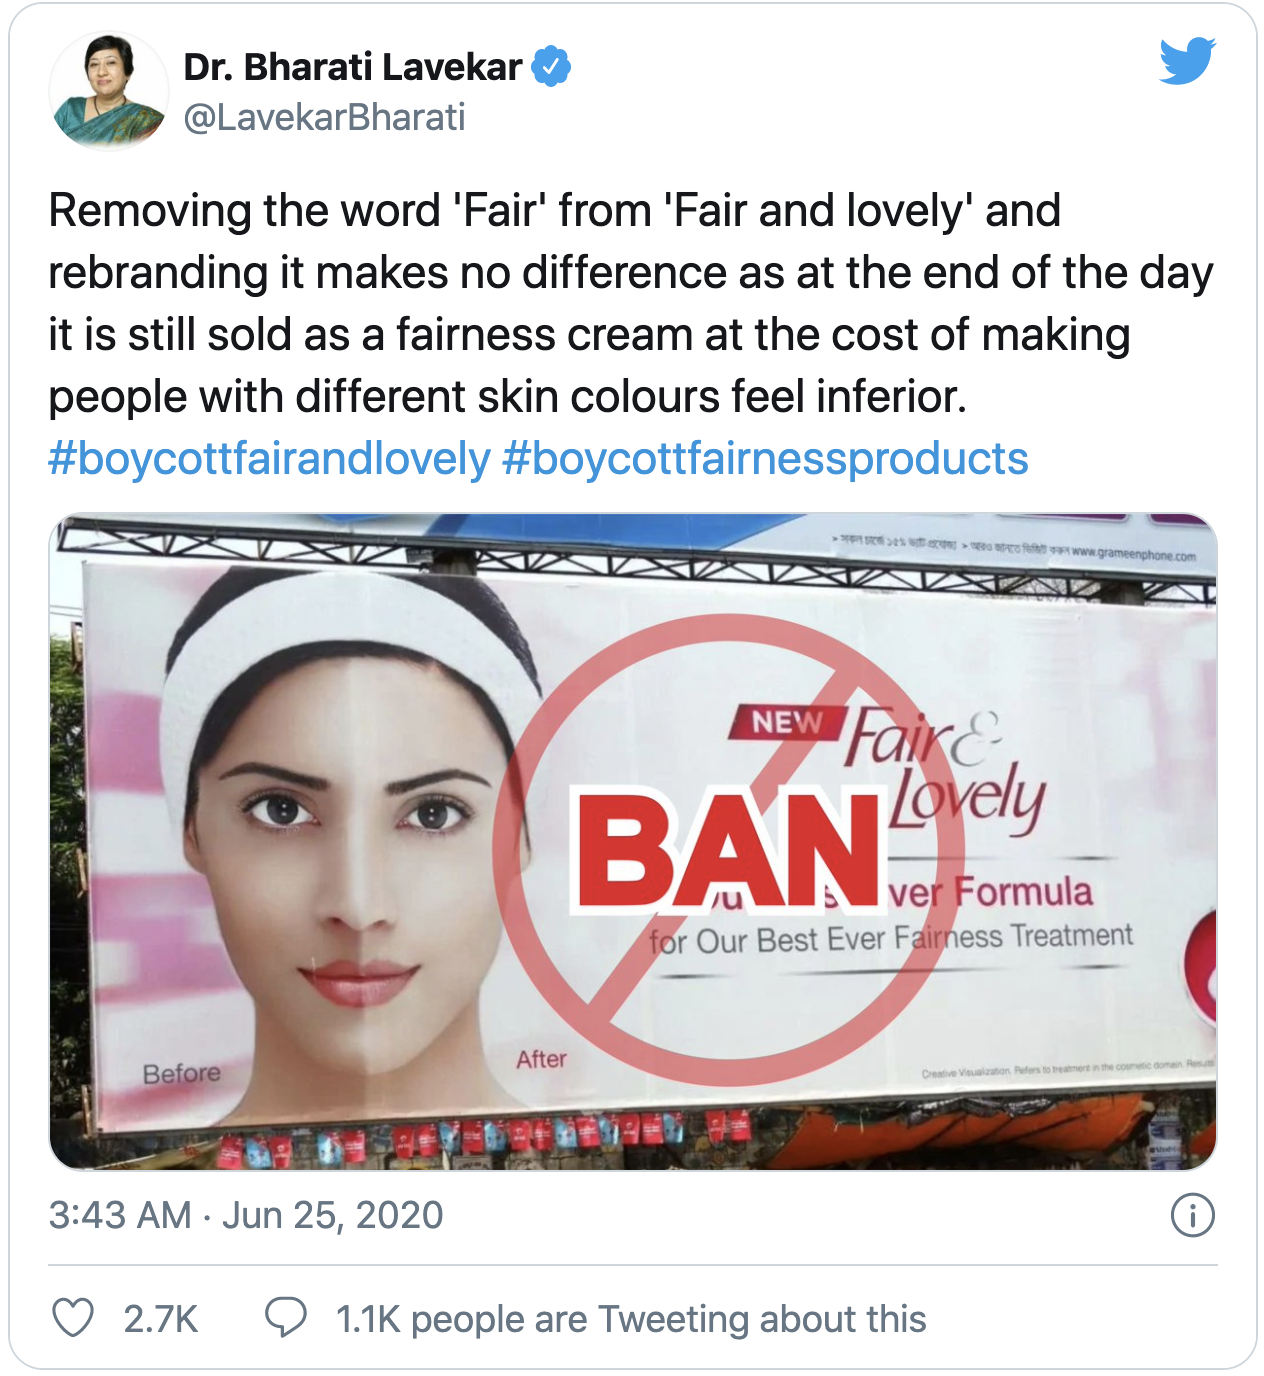 A tweet saying: Removing the word 'Fair' from 'Fair and lovely' and rebranding it makes no difference as at the end of the da